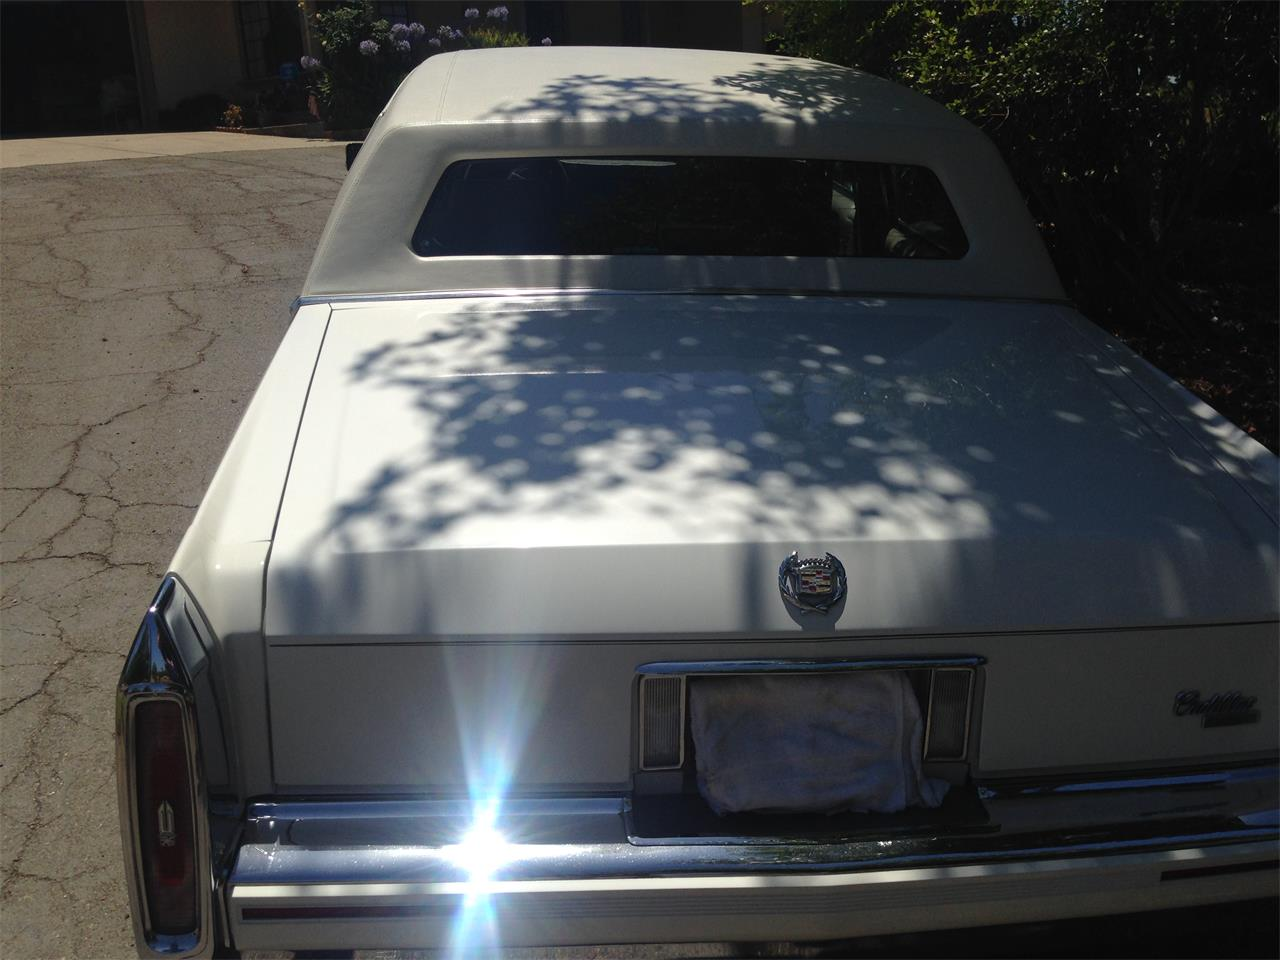 Large Picture of '90 Cadillac Brougham d'Elegance located in Huntington Beach California - $17,900.00 - LR7K